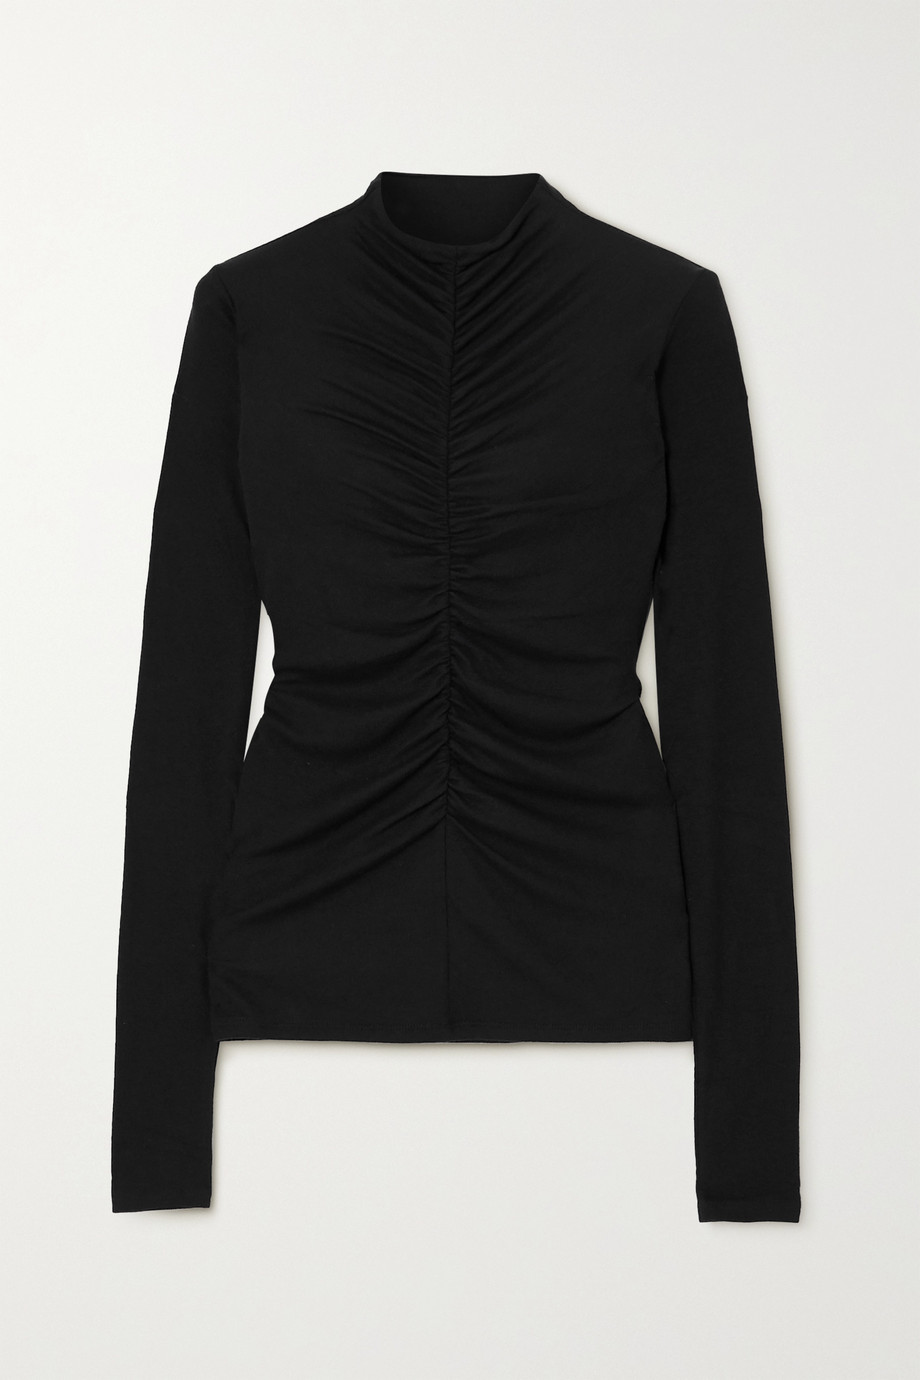 Veronica Beard Theresa ruched ribbed stretch-modal turtleneck top